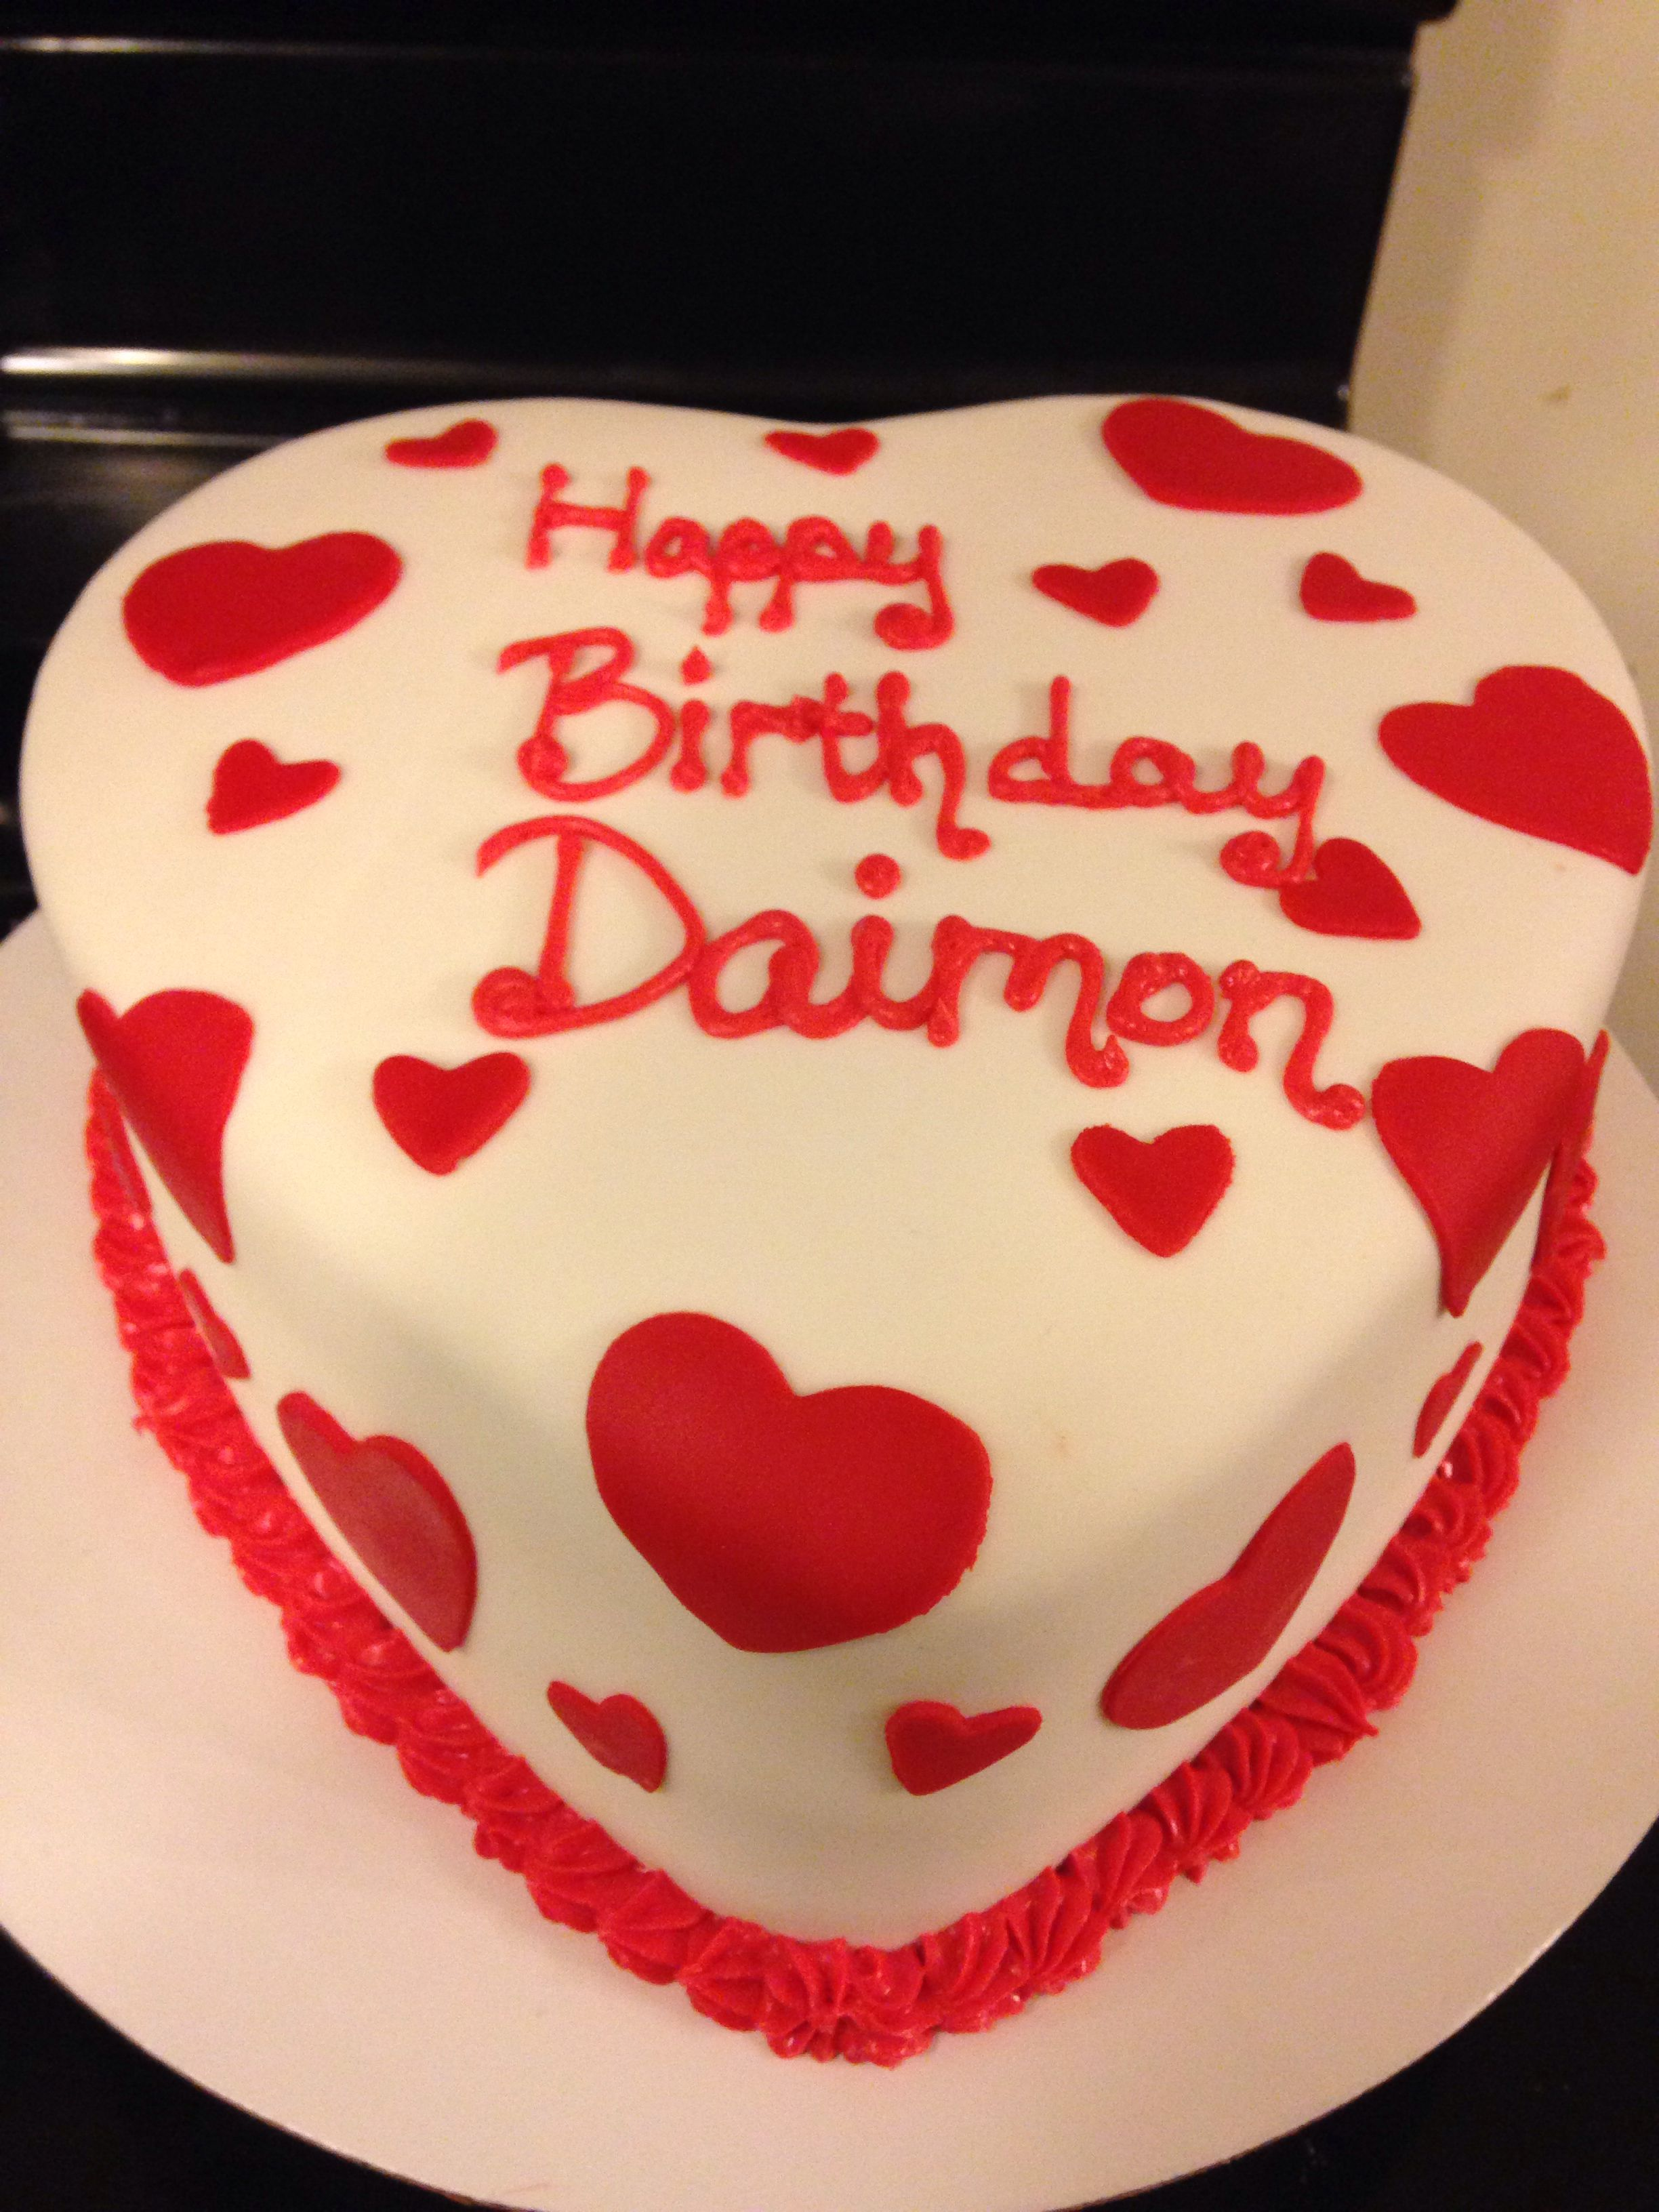 Heart Shaped Birthday Cake Images : Heart Shaped Love Birthday Cake Our Custom Cakes Pinterest